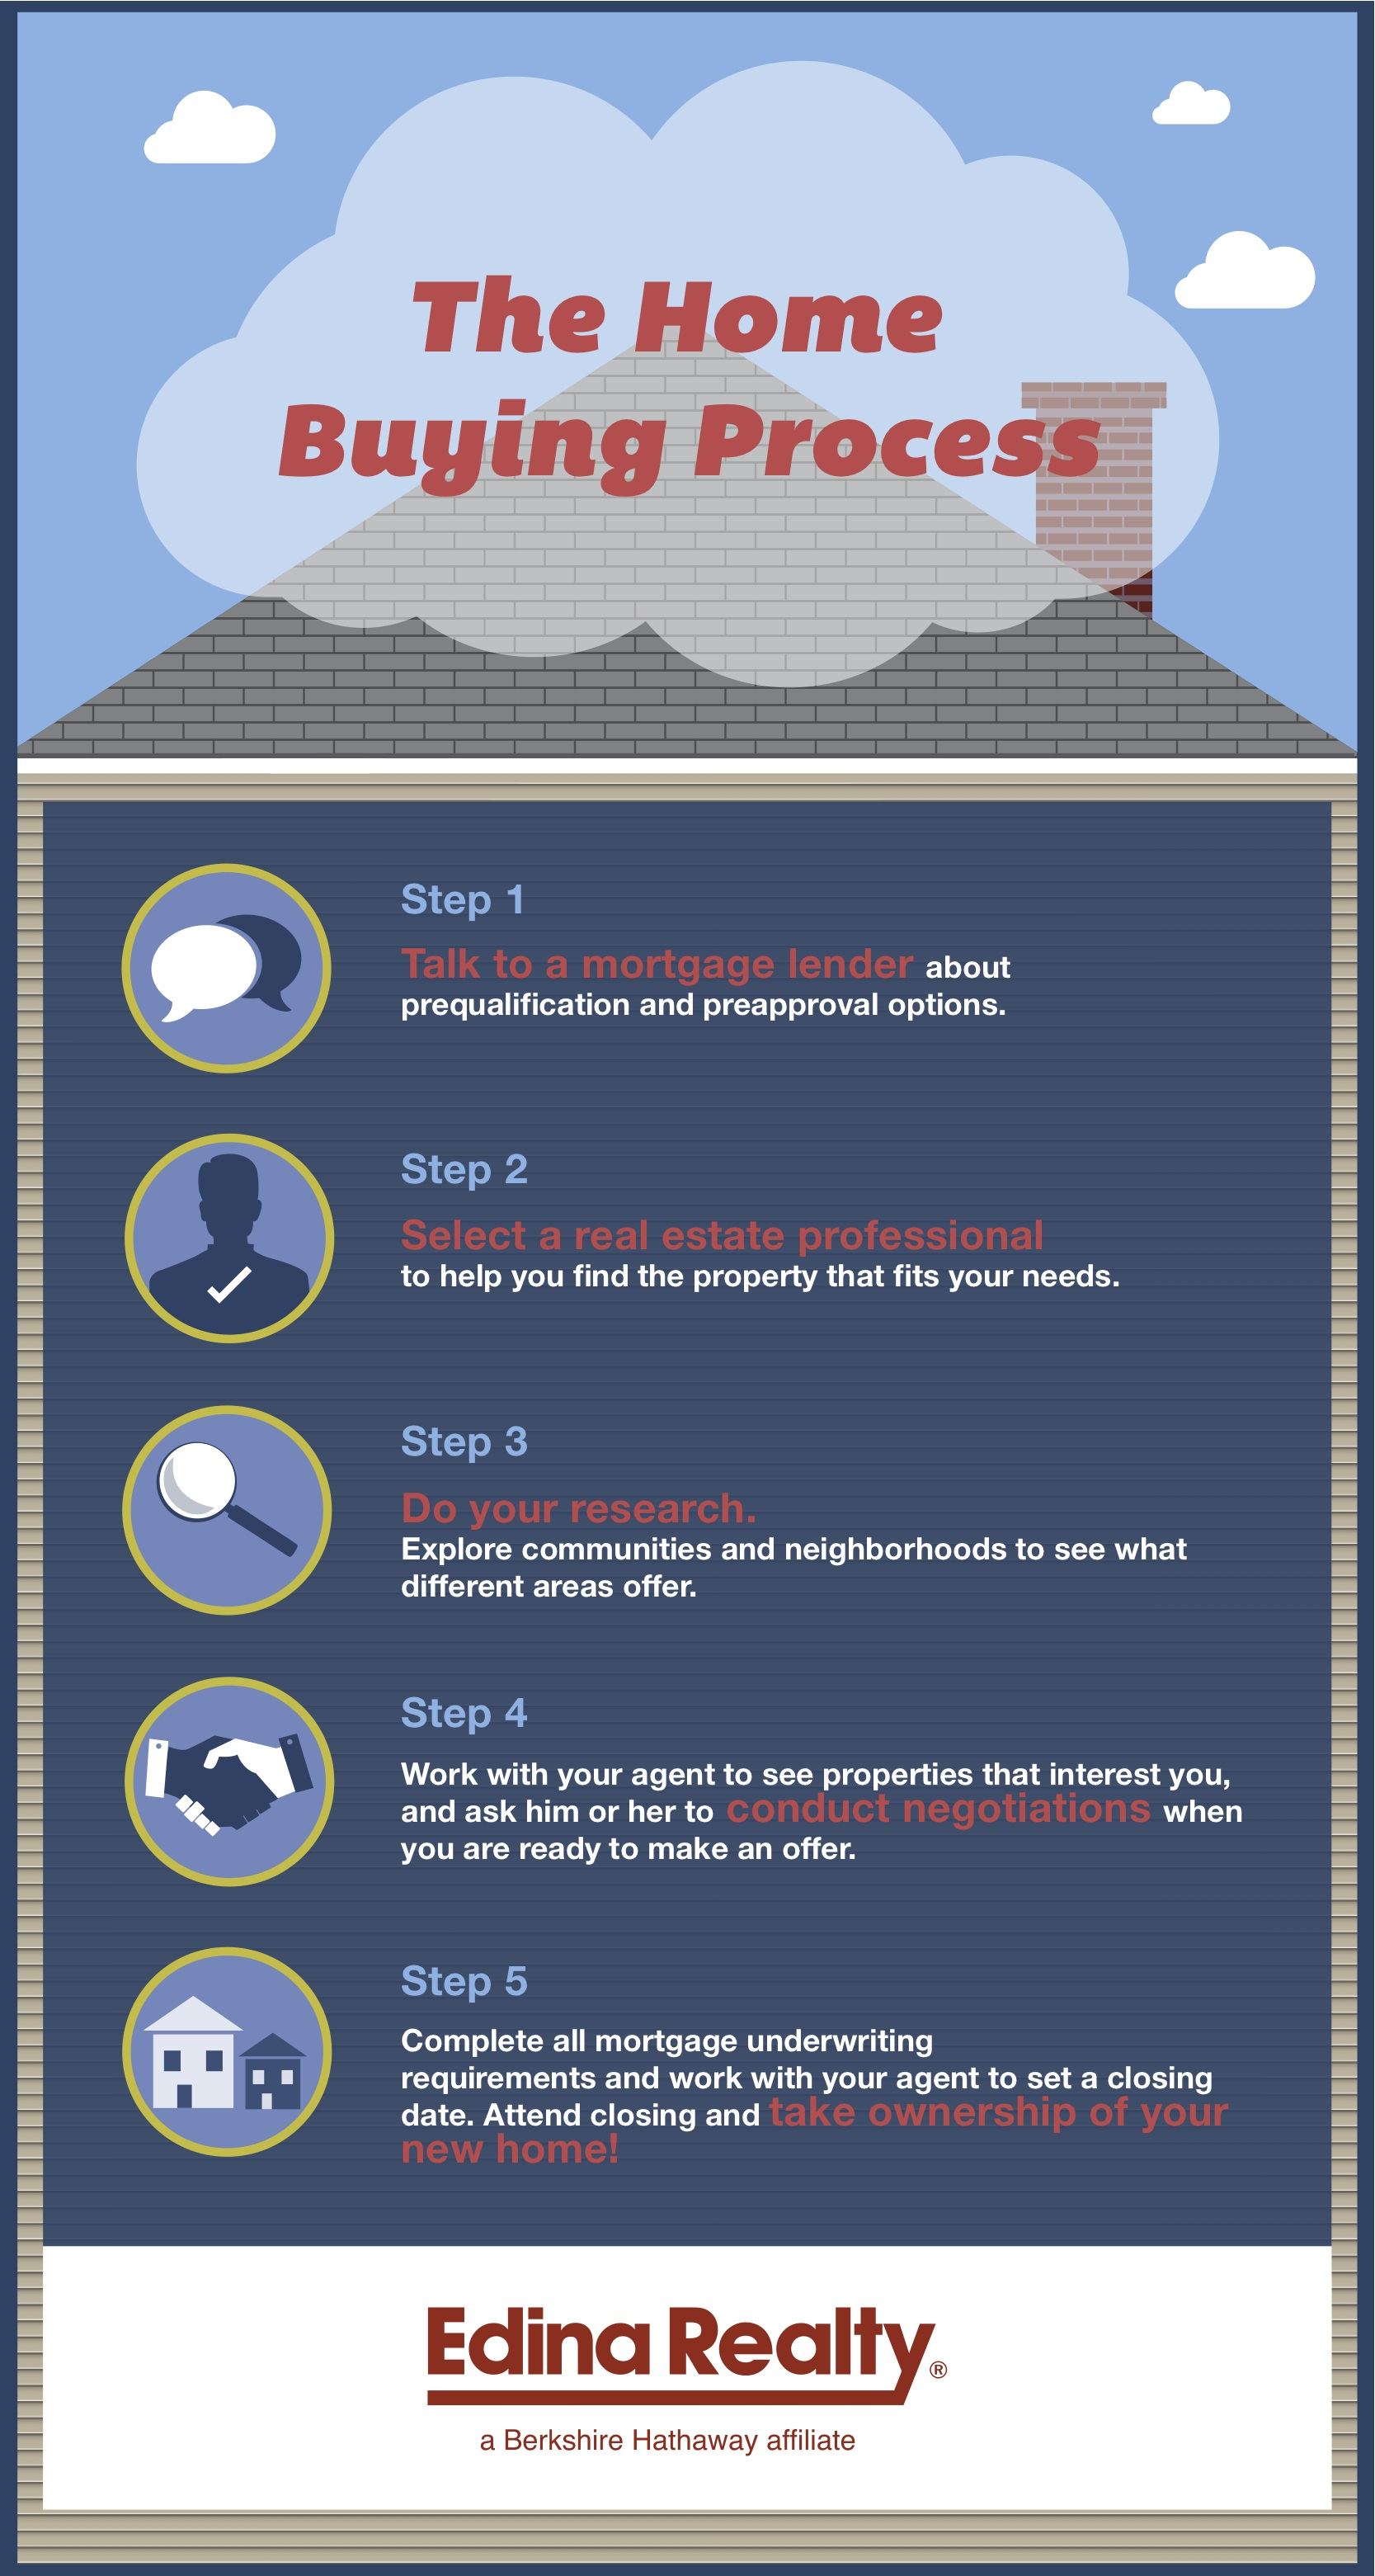 Home buying process infographic